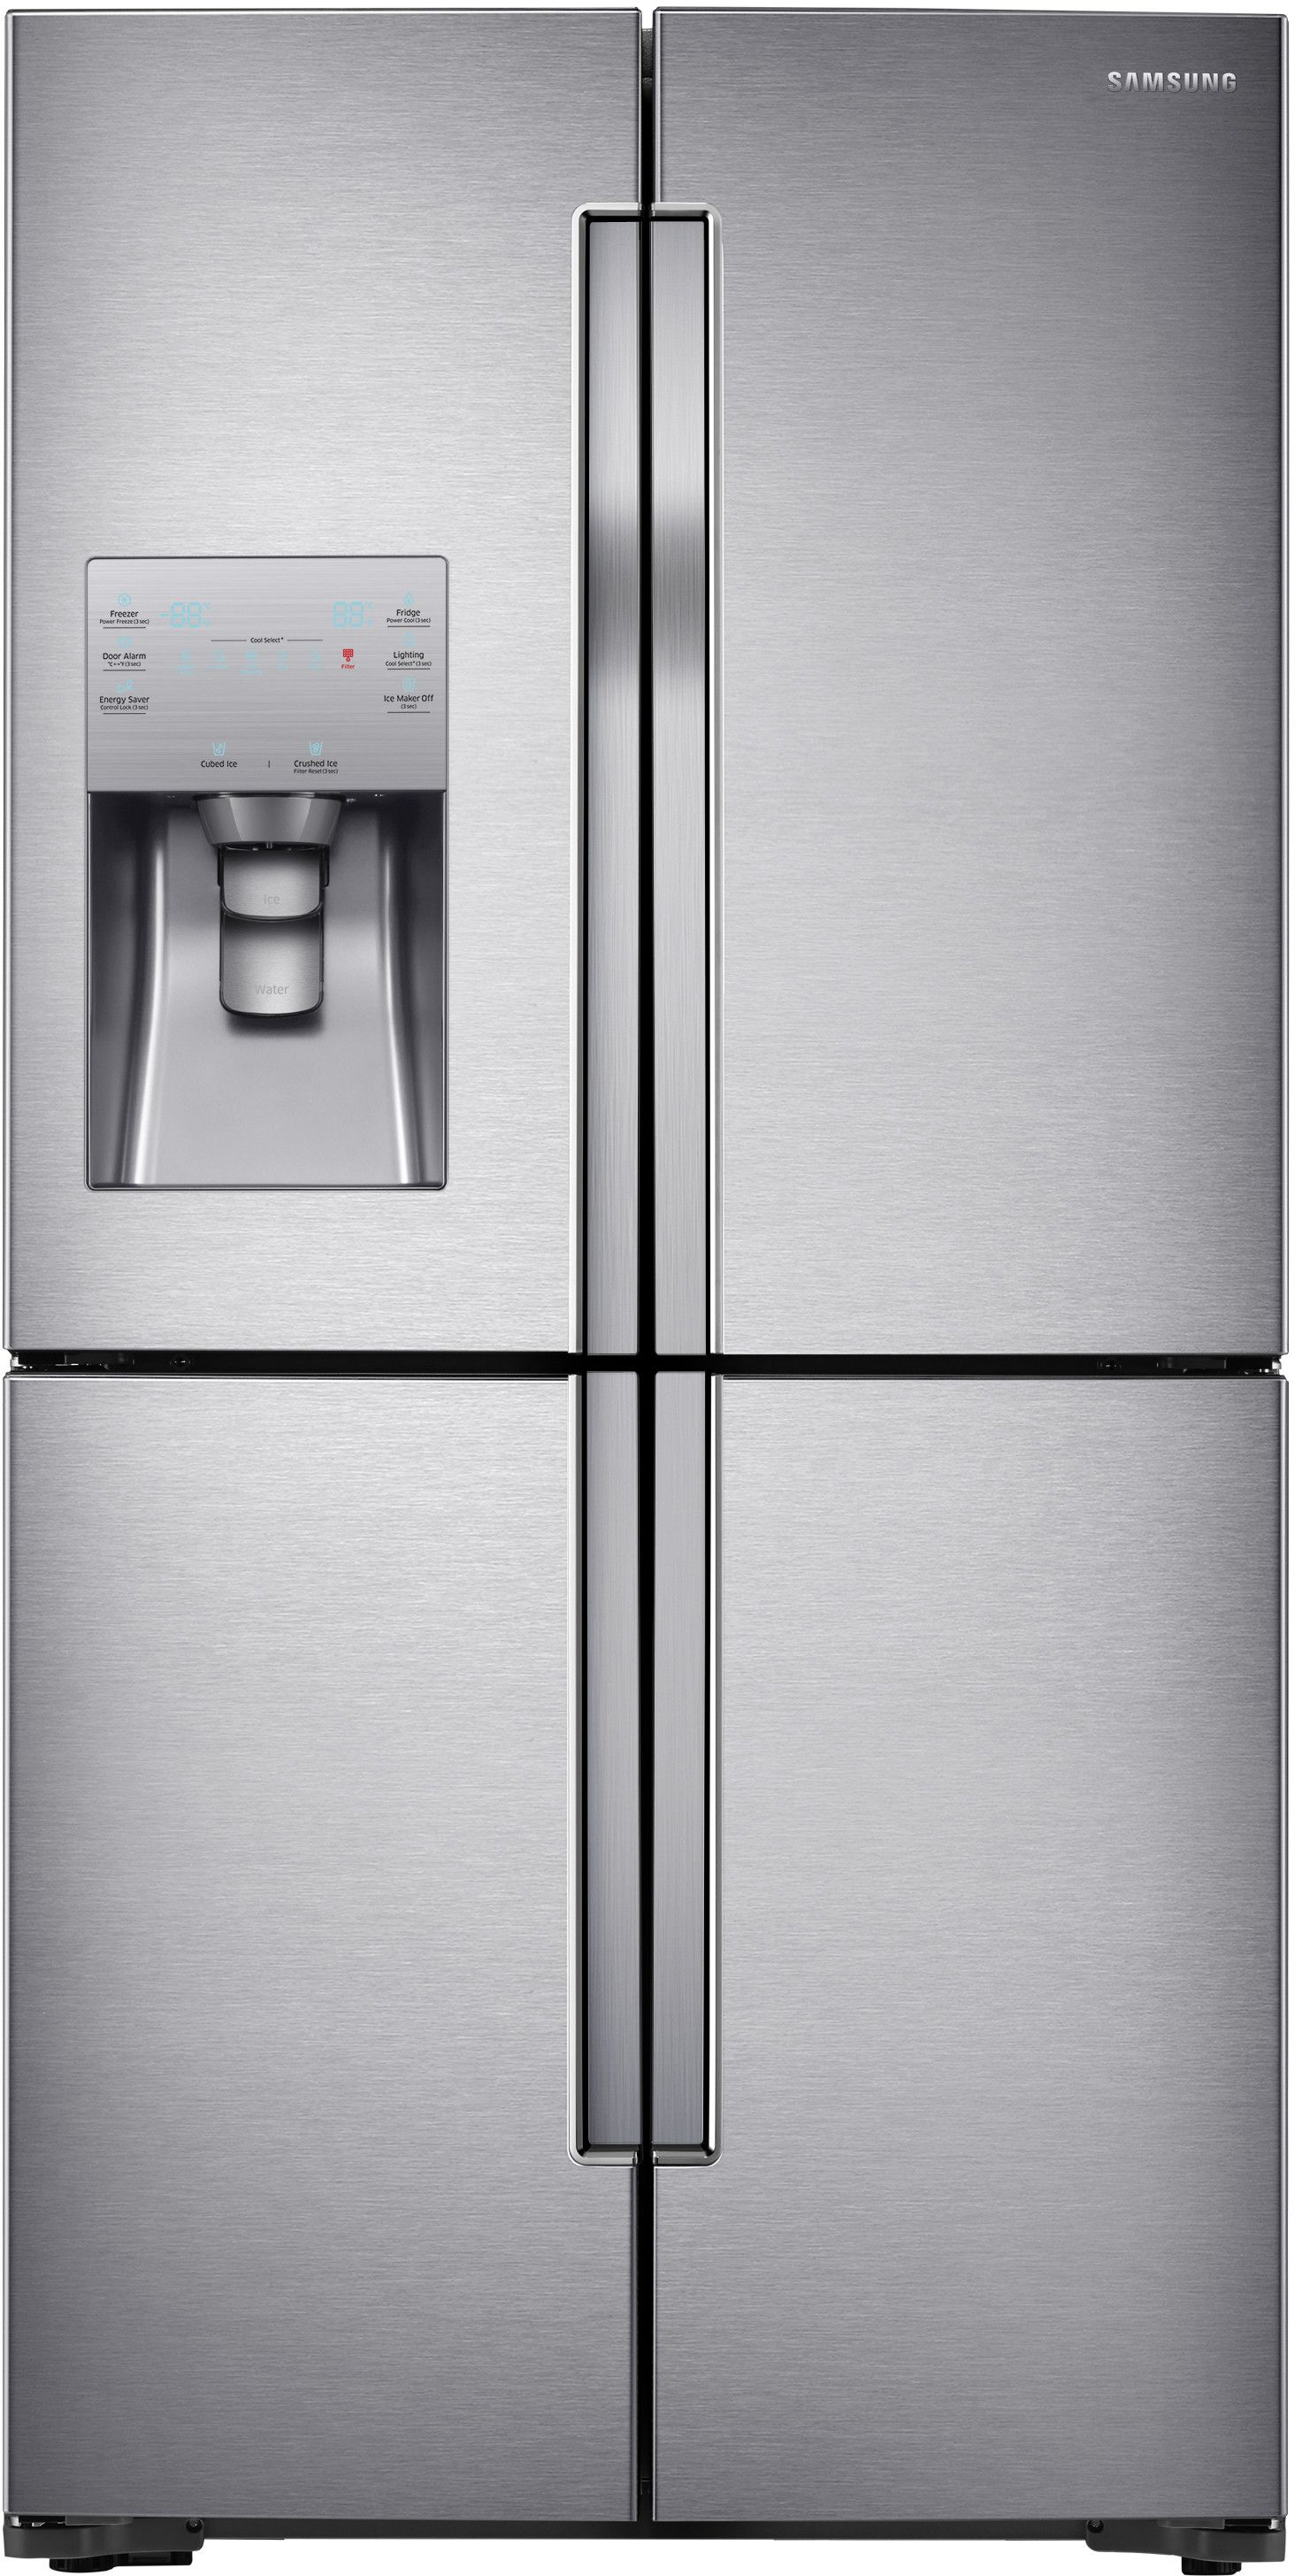 Charming Samsung RF23J9011SR 36 Inch Counter Depth French Door Refrigerator With  22.5 Cu. Ft. Capacity